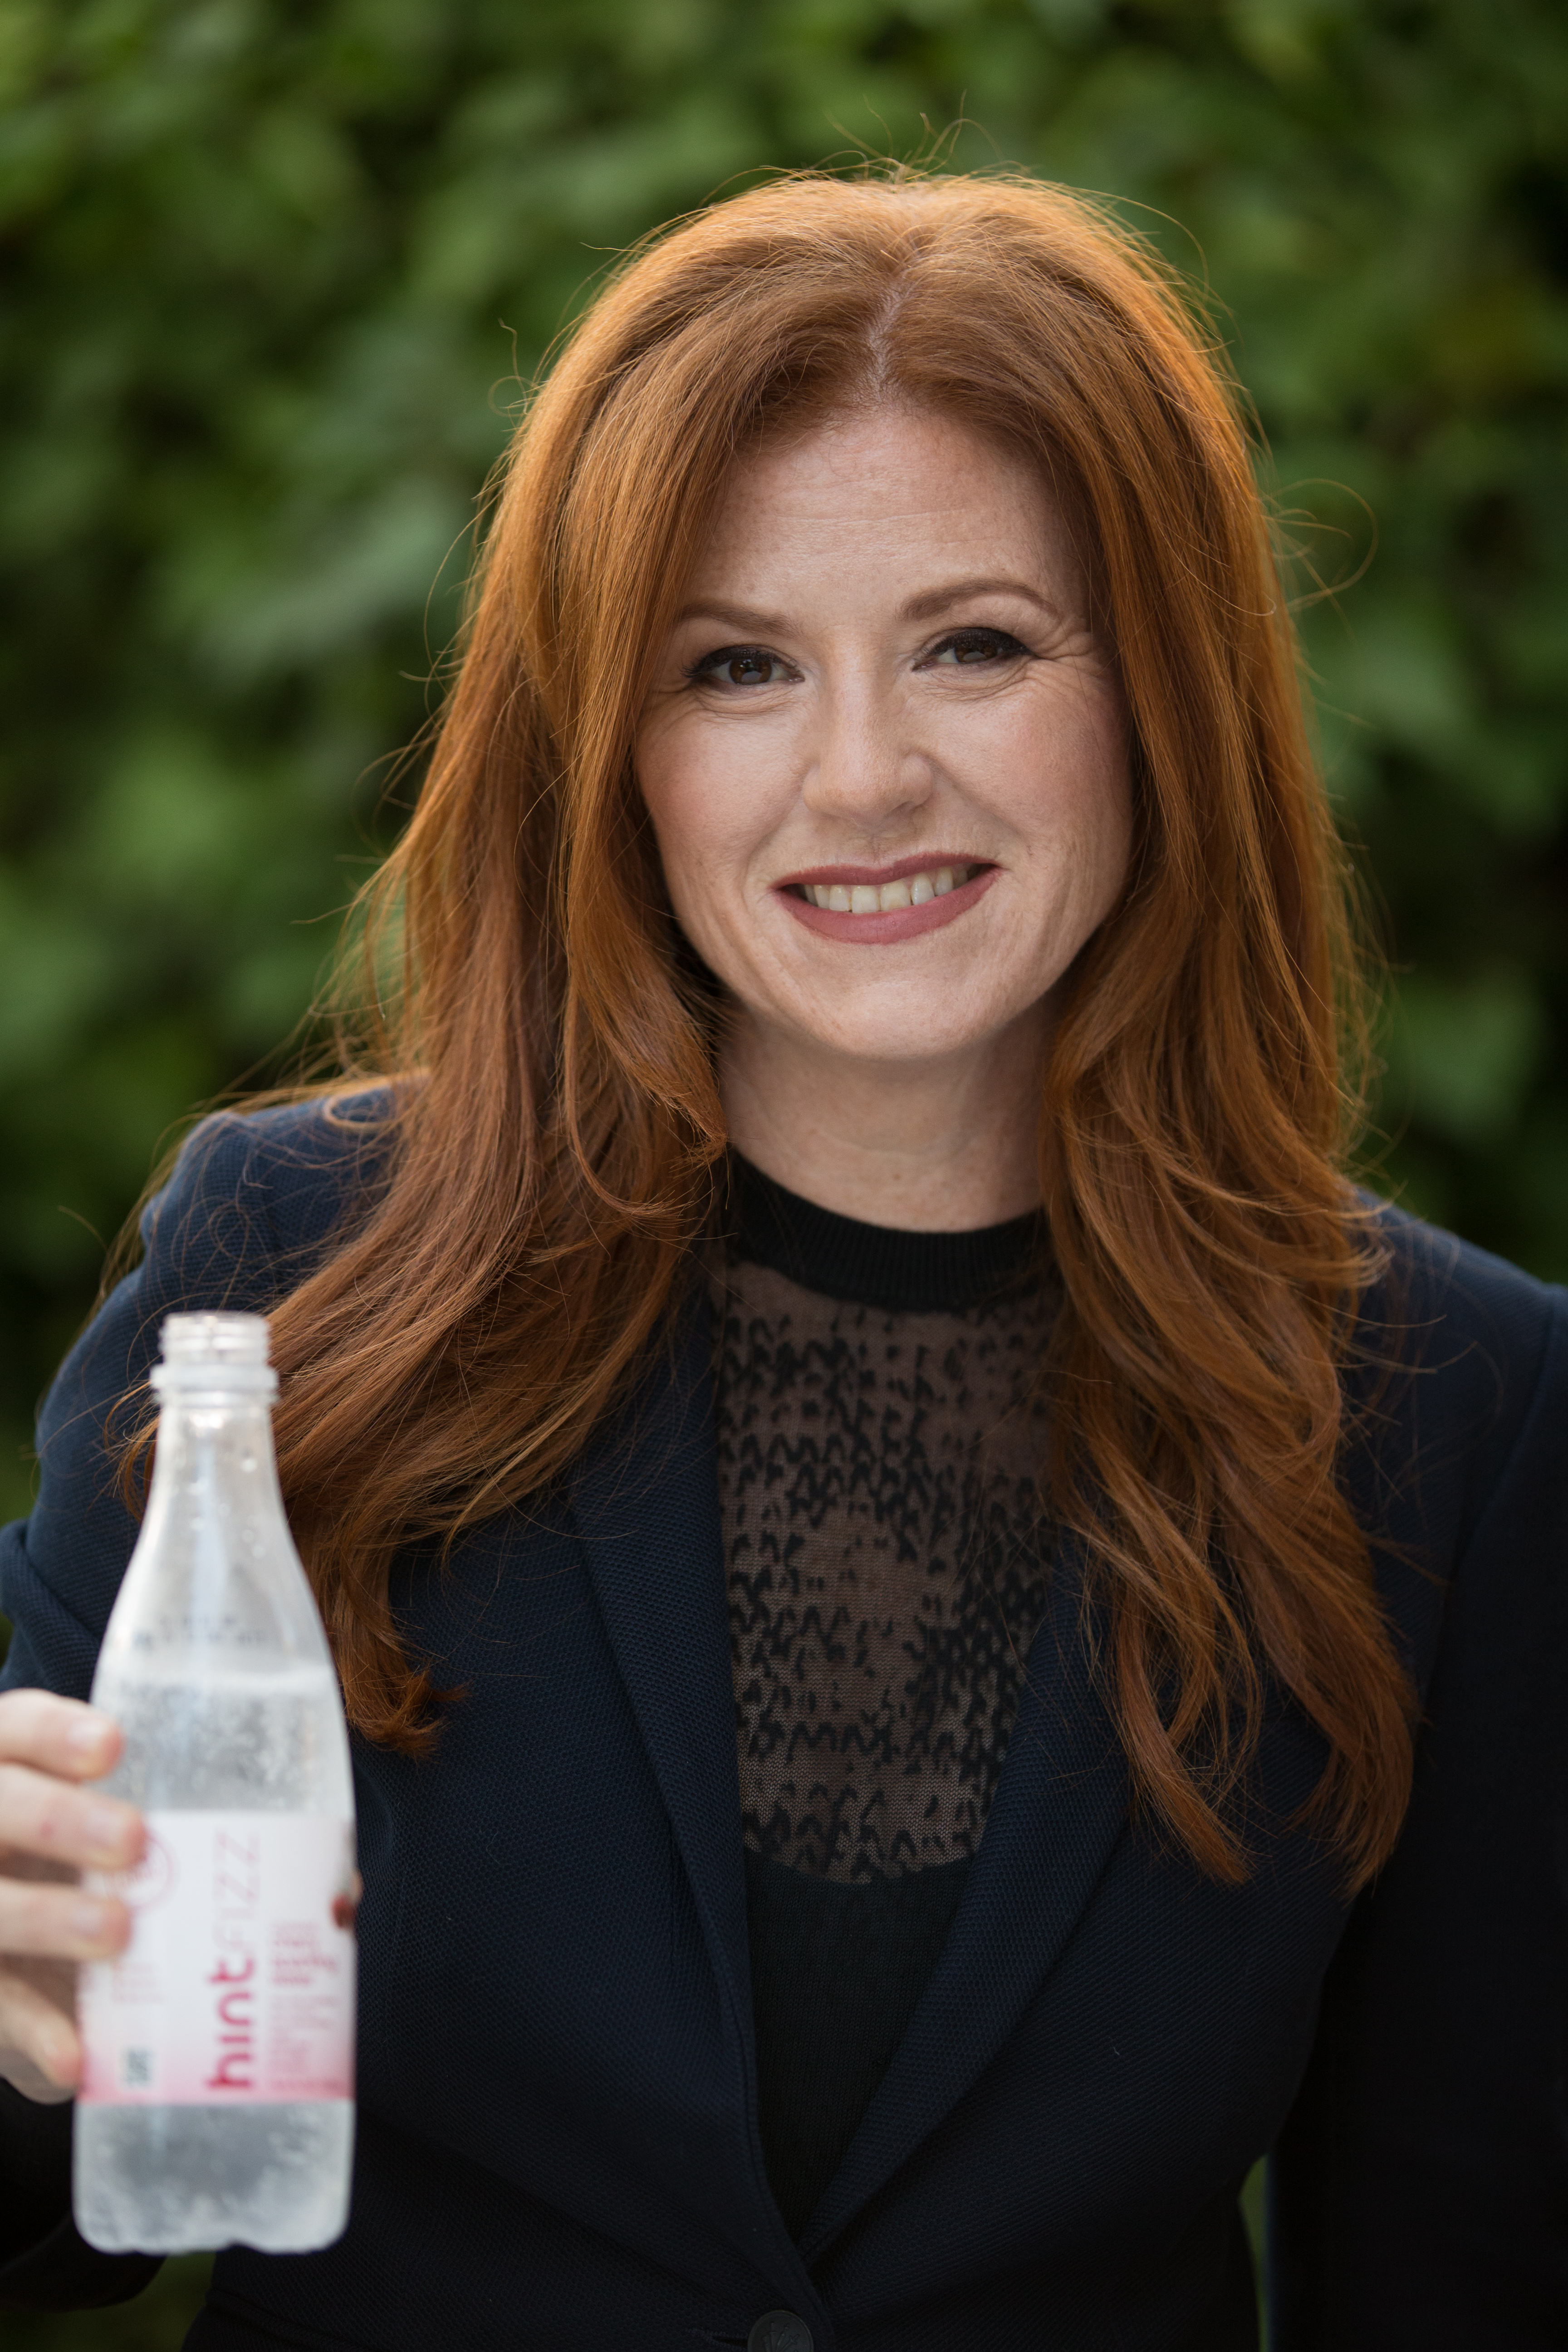 Kara Goldin, founder and CEO of Hint Water